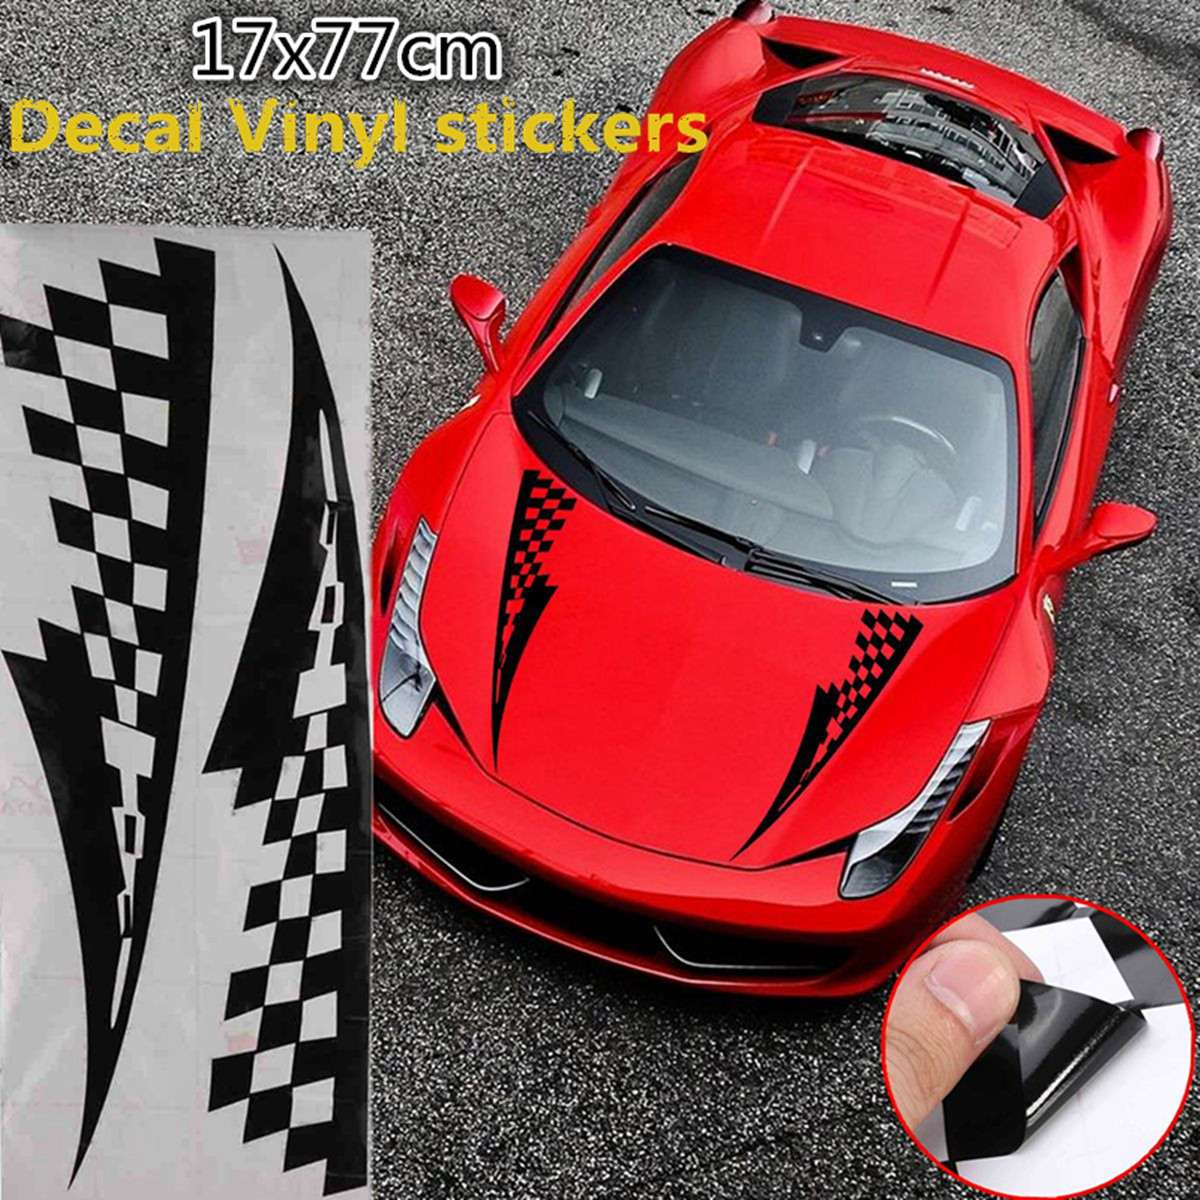 17x77cm black car decal vinyl graphics stickers hood decals checkered flags stripe cg169 china